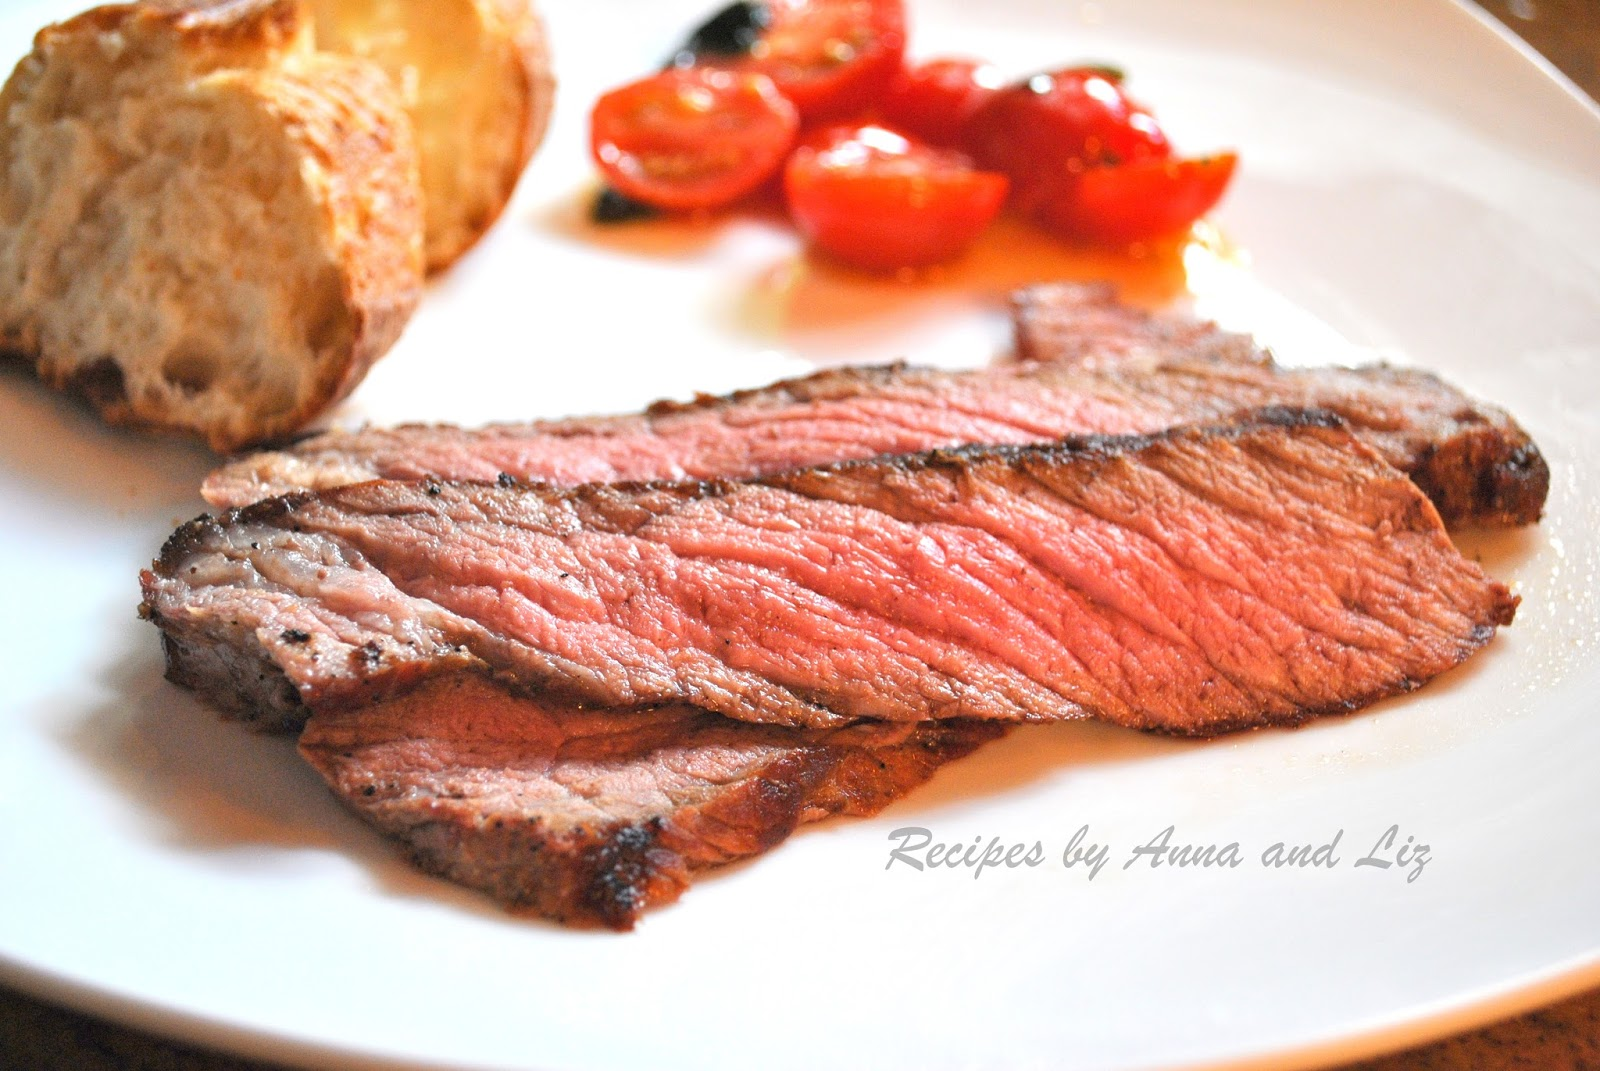 ... Recipes... by Anna and Liz: London Broil Steak Grilled to Perfection